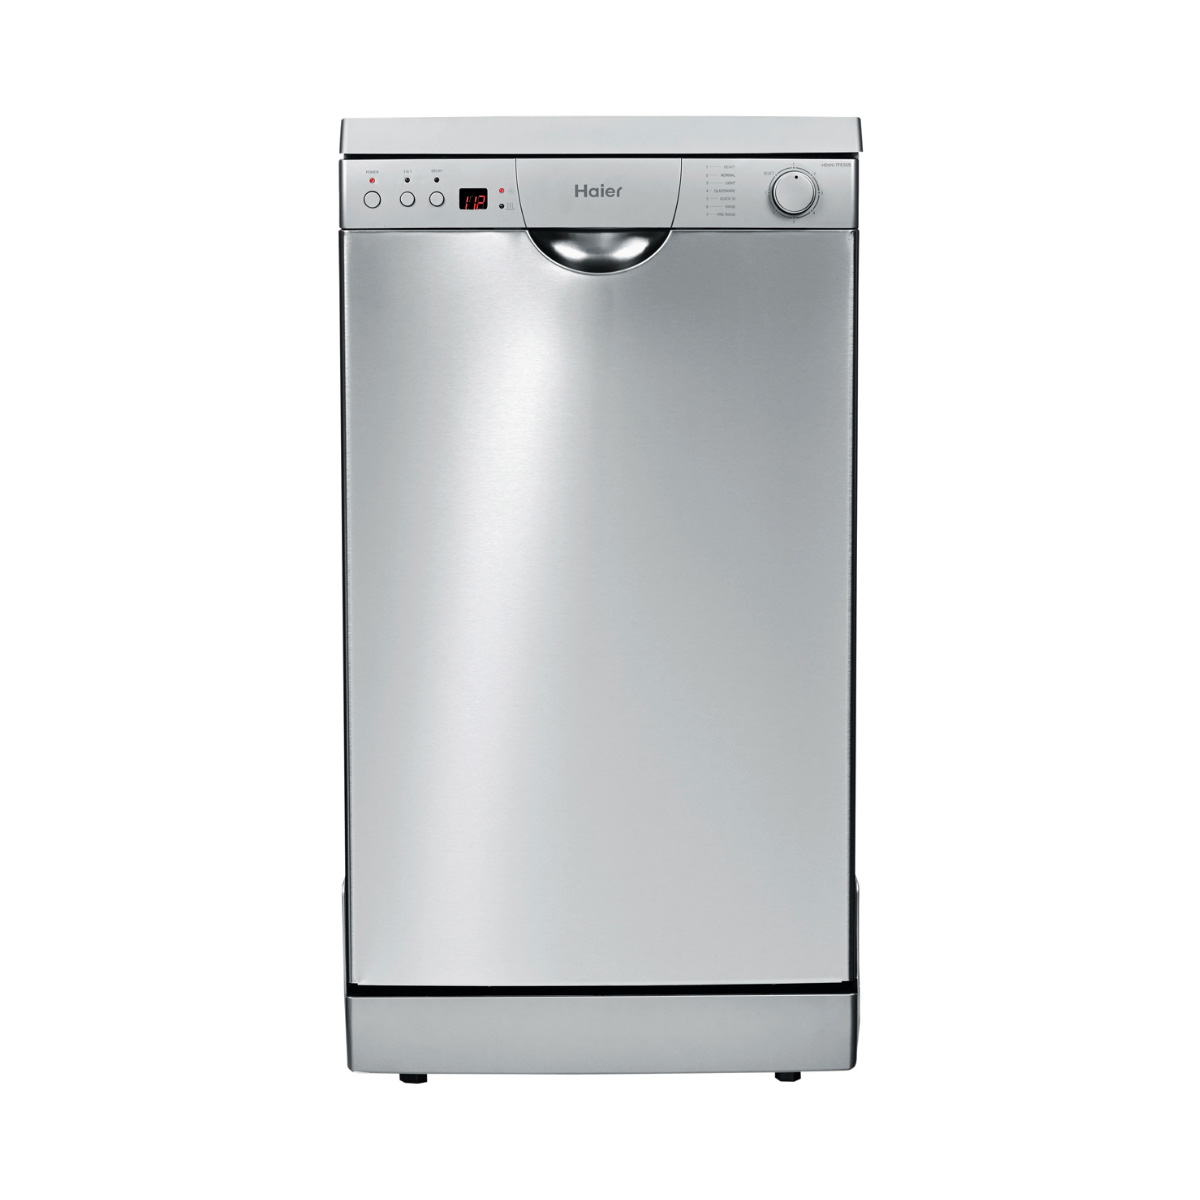 Haier HDW9TFE3SS2 Compact Dishwasher